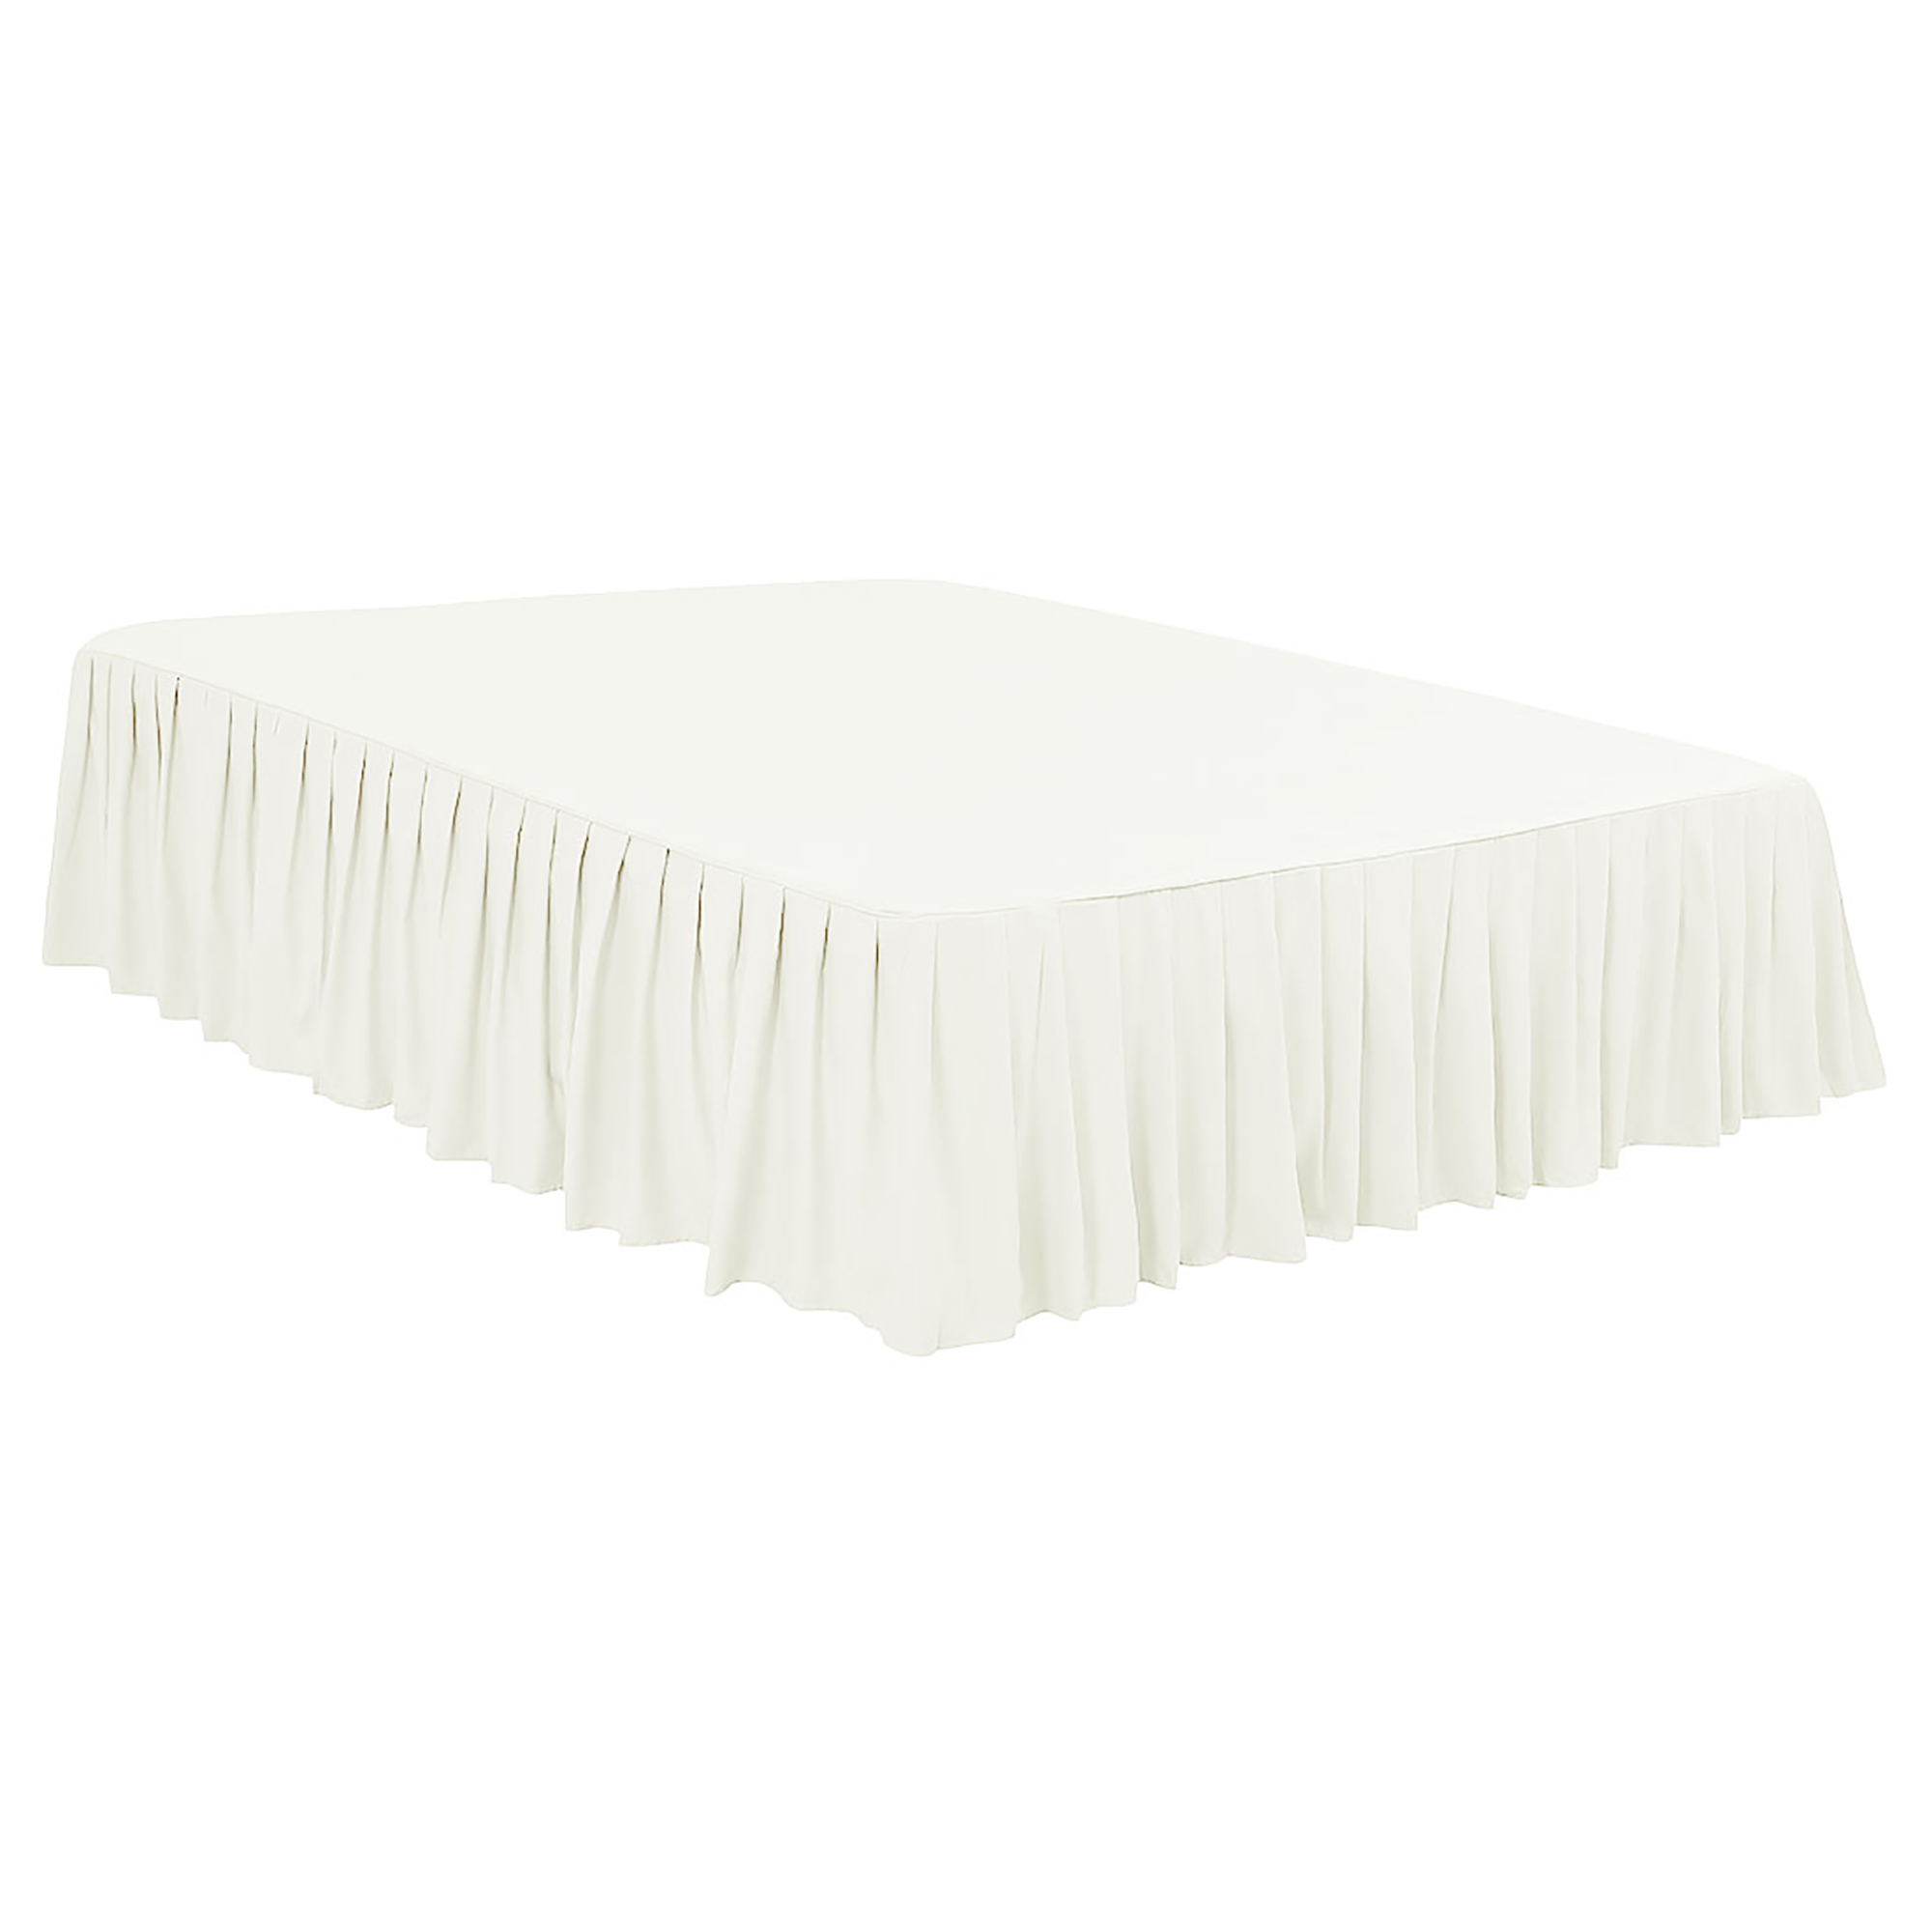 "Ruffled Bed Skirts Polyester Brushed Soft Platform 16"" Drop Full Pearl White"